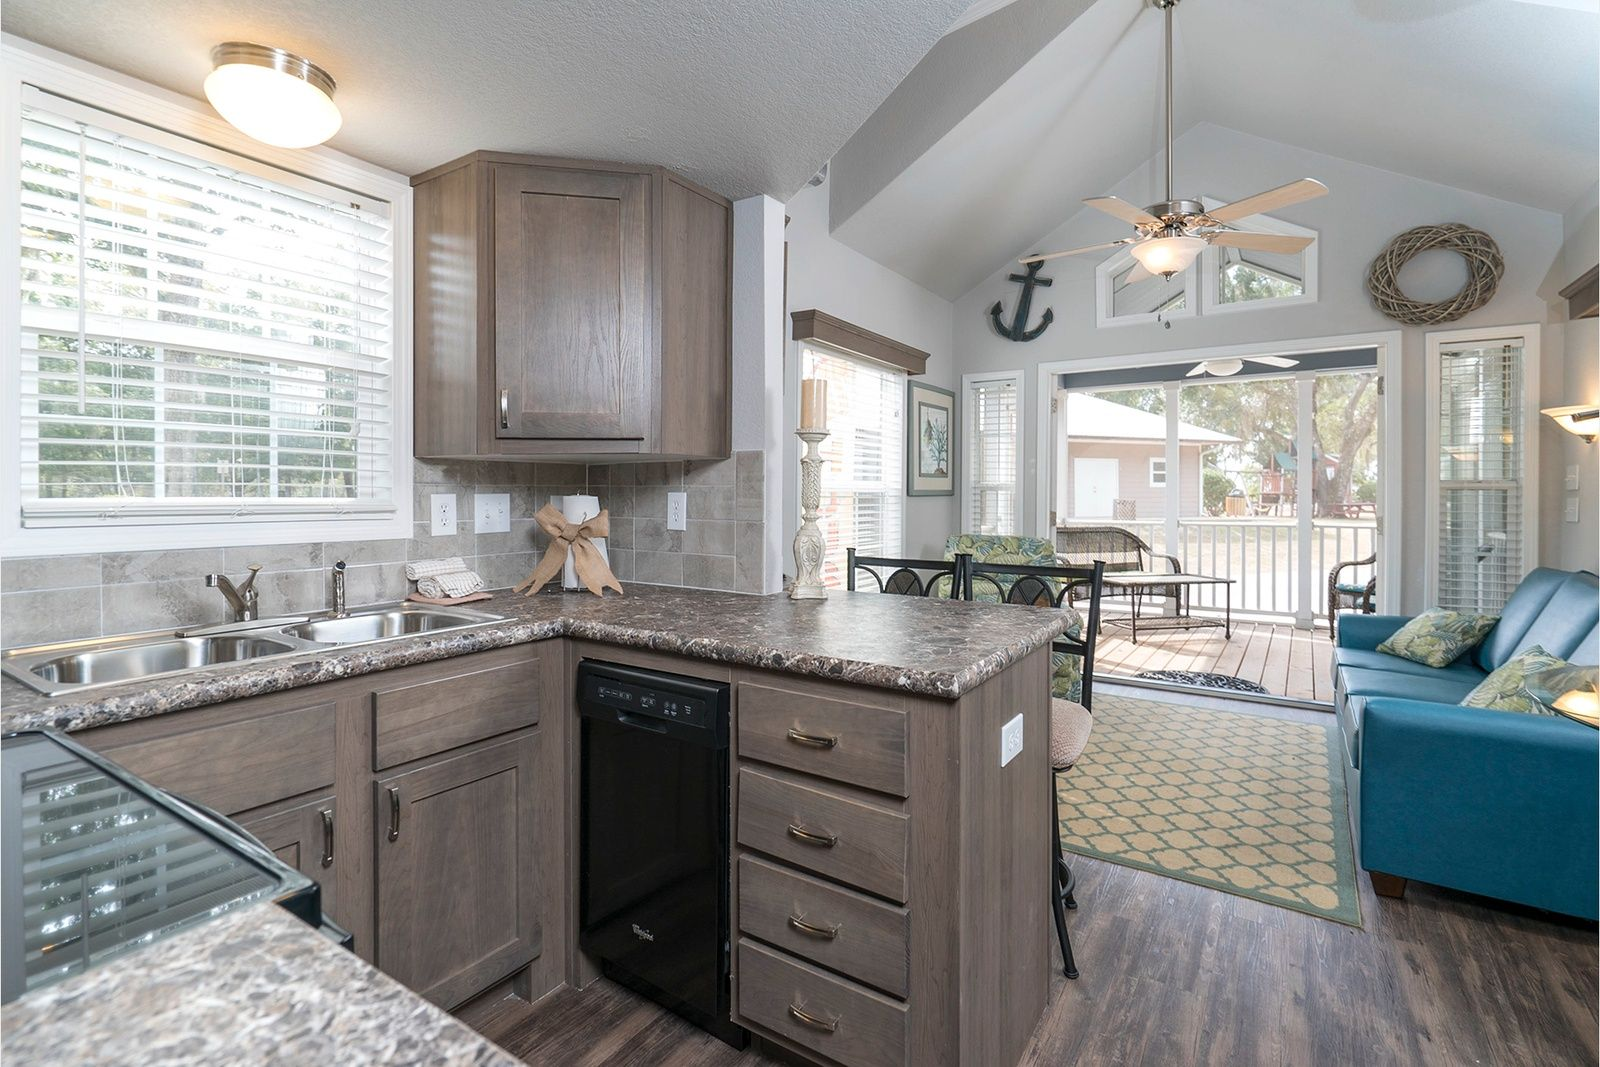 royal series - torreya park model home with loft - kitchen https